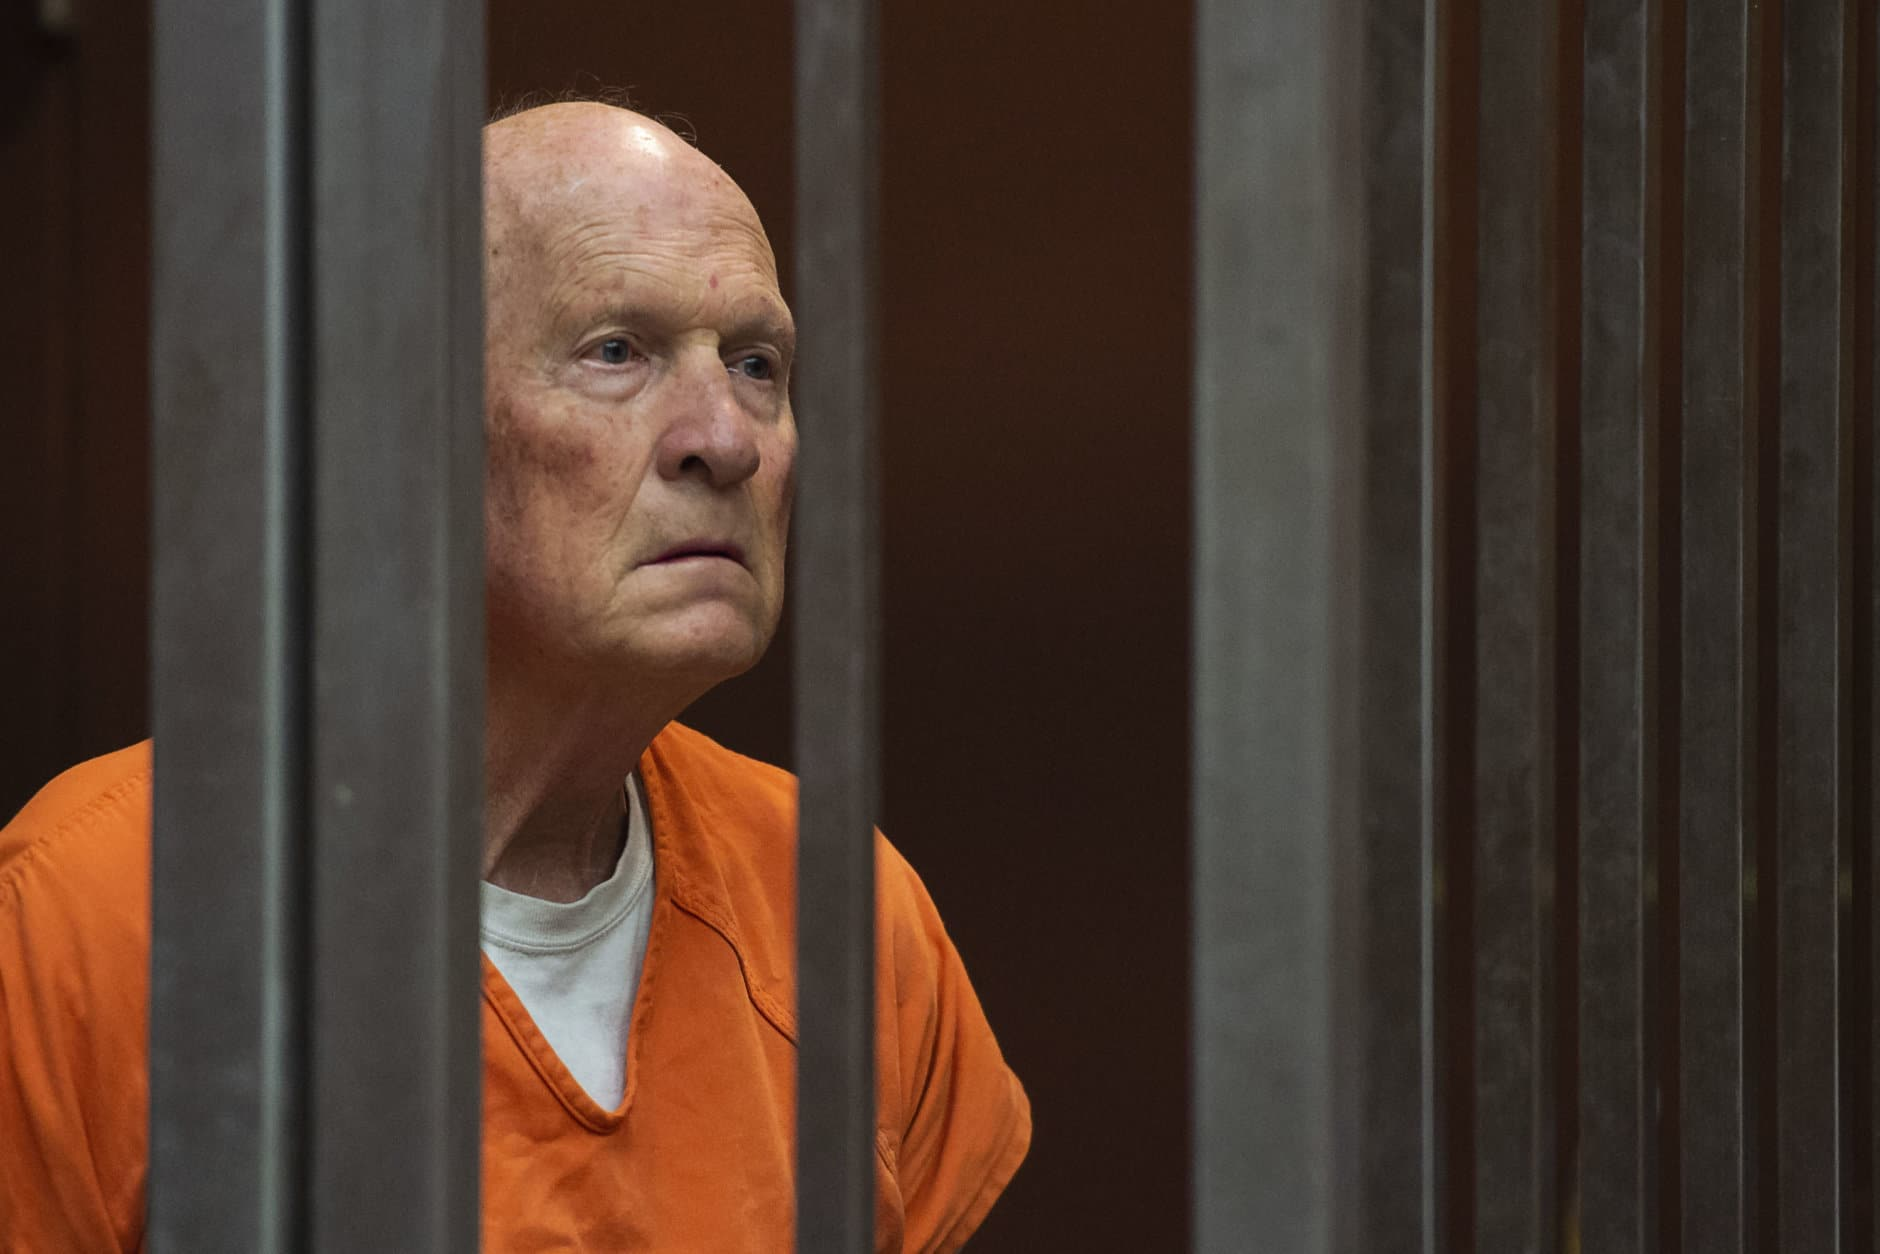 Former police officer Joseph James DeAngelo, accused of being the Golden State Killer, stands in a Sacramento, Calif., jail court on May 29, 2018, as a judge weighs how much information to release about his arrest. DeAngelo is suspected in at least a dozen killings and roughly 50 rapes in the 1970s and '80s. (Paul Kitagaki Jr./The Sacramento Bee via AP, Pool)